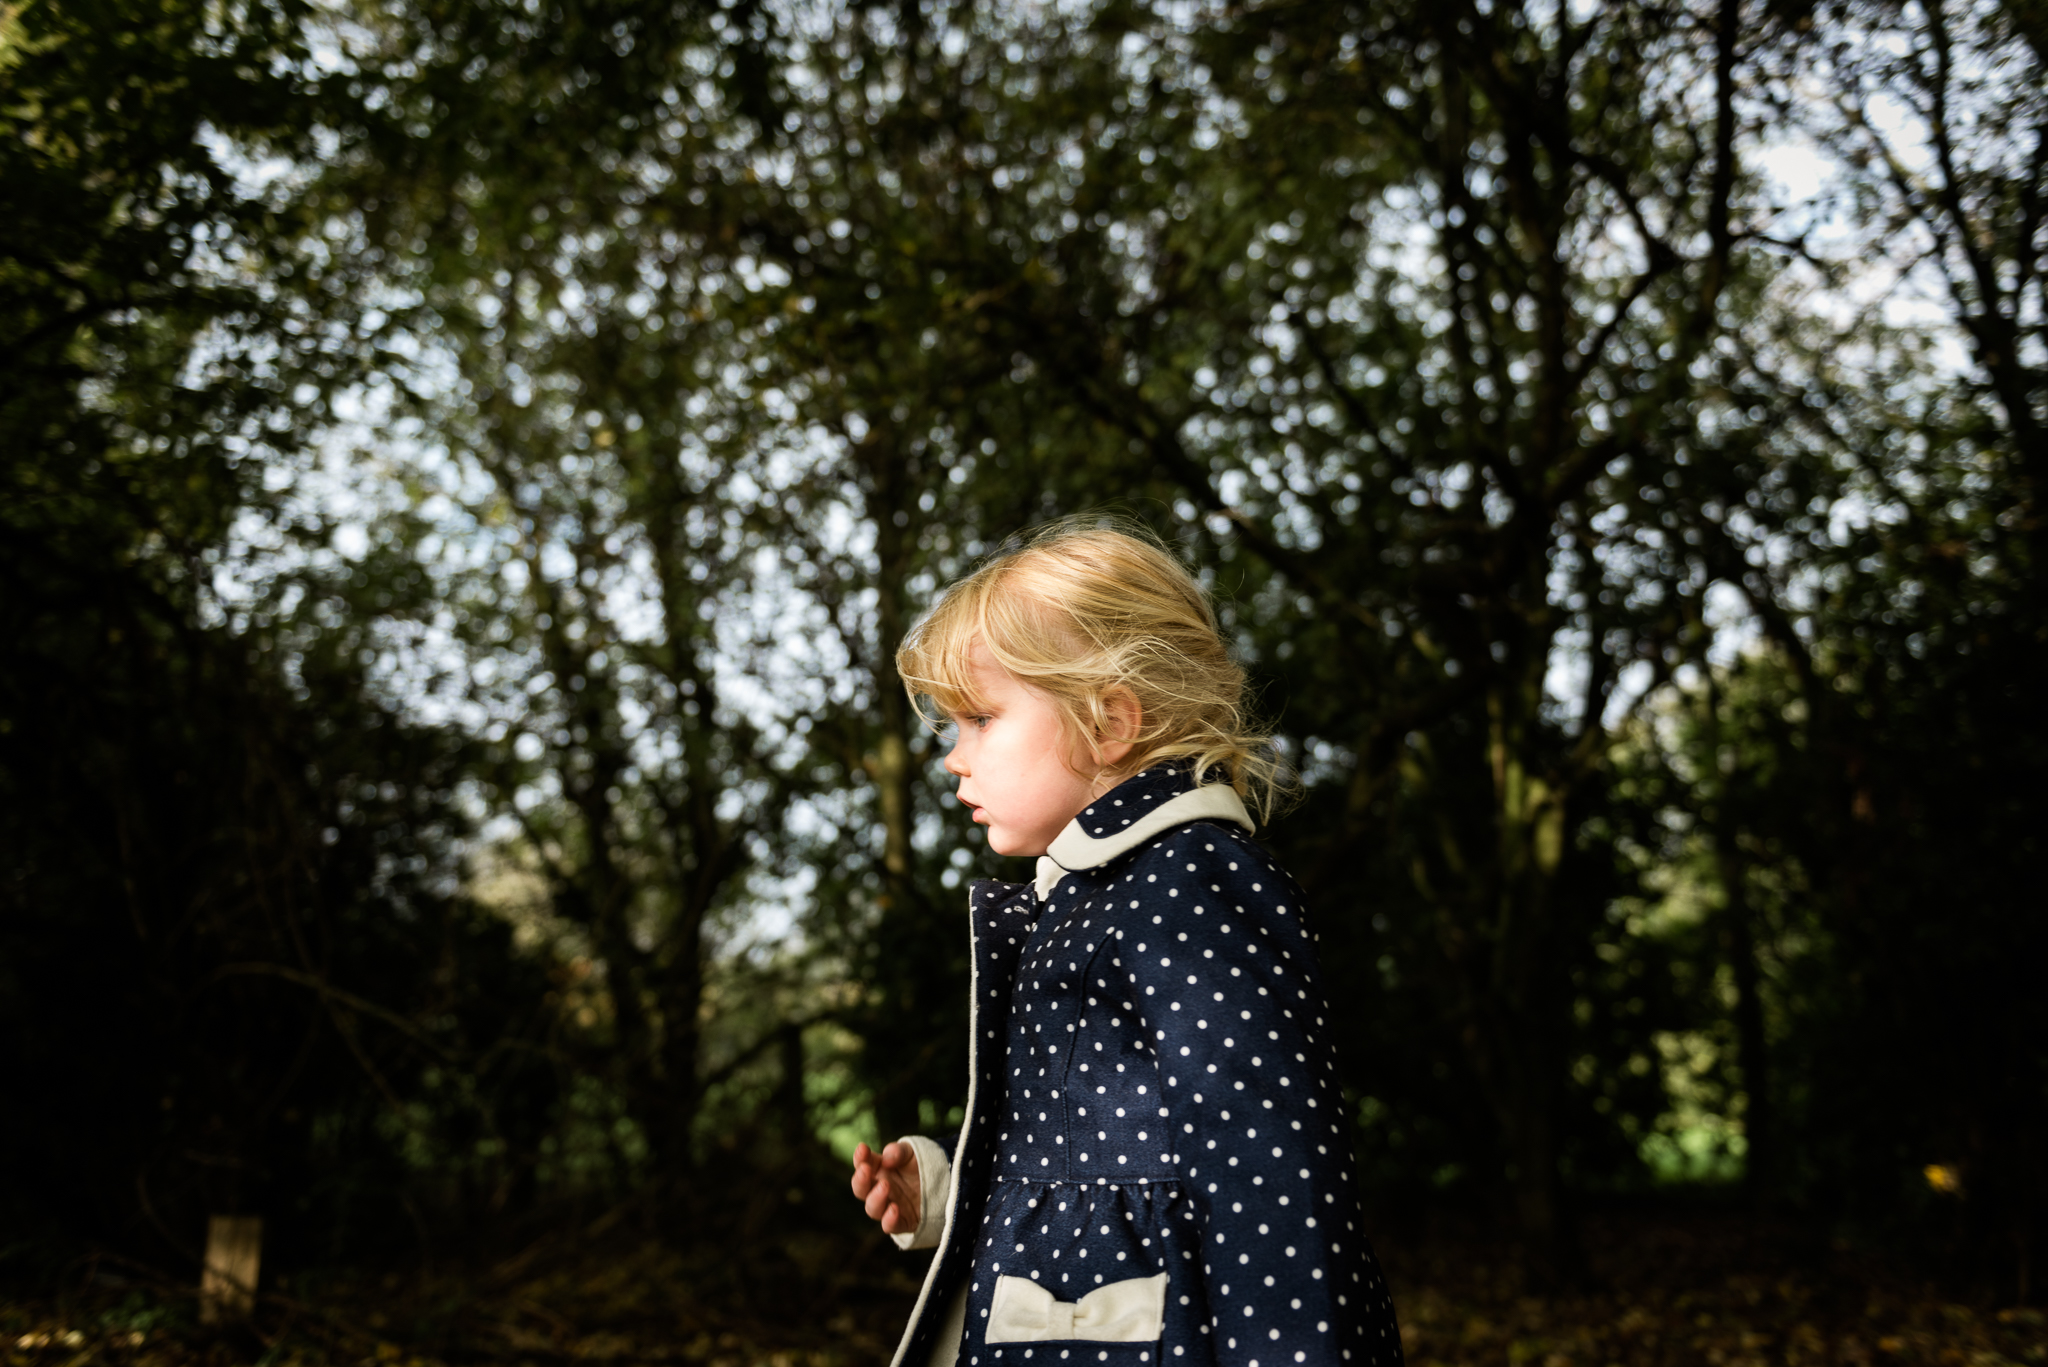 Staffordshire Documentary Family Photography Autumn Lifestyle Fall Leaves - Jenny Harper-14.jpg